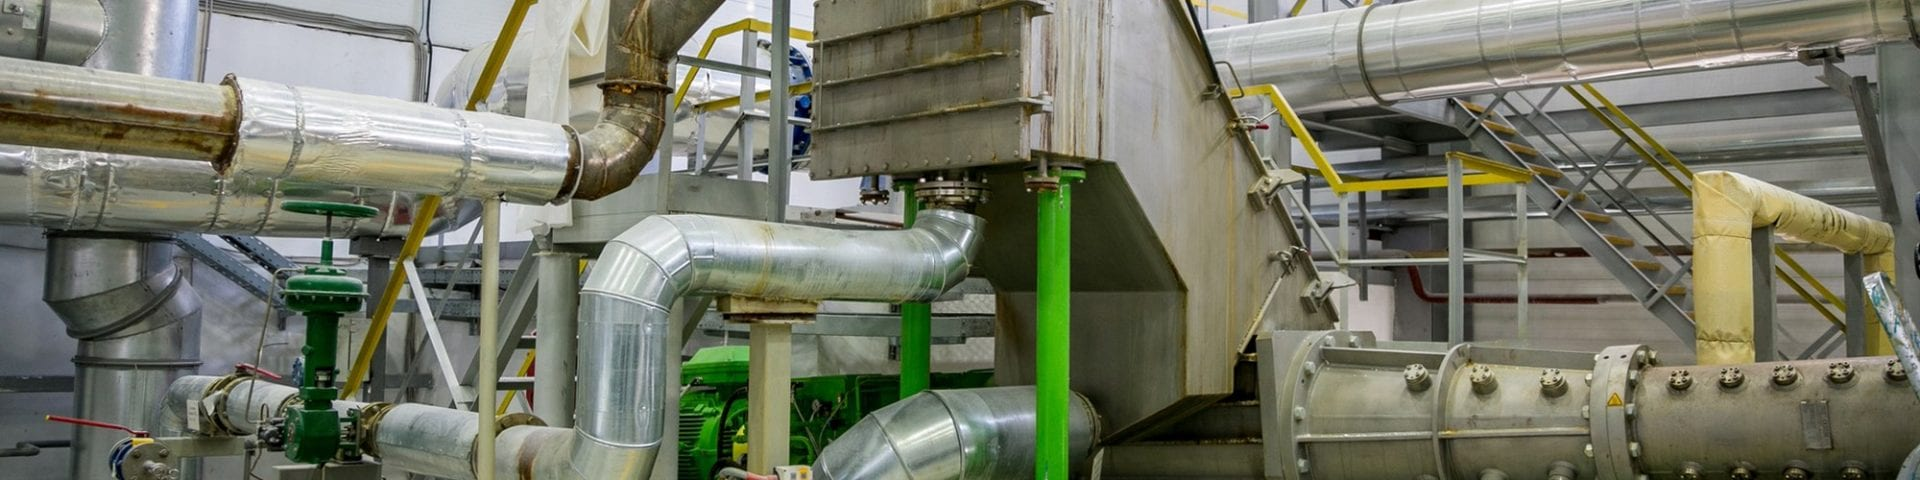 Air Contaminant Control Ventilation for Controlling Worker Exposure